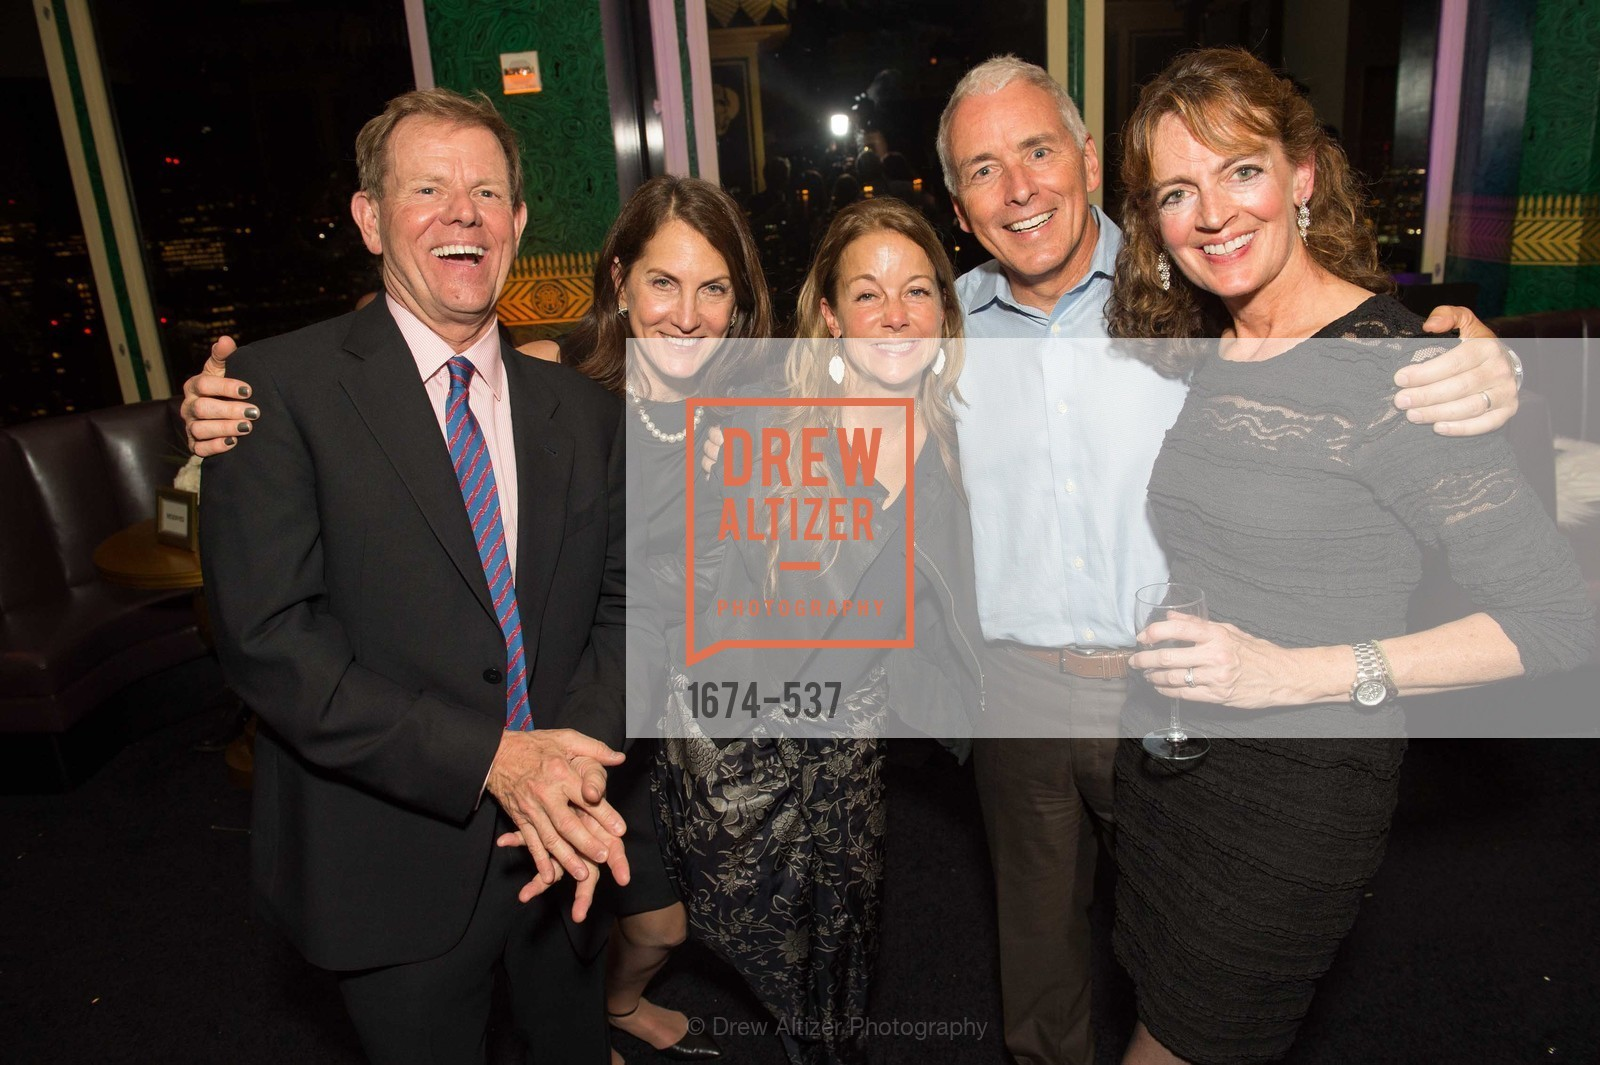 Magill, Lori Ubben, TOP OF THE MARK'S 75TH Anniversary Party, US, November 7th, 2014,Drew Altizer, Drew Altizer Photography, full-service agency, private events, San Francisco photographer, photographer california